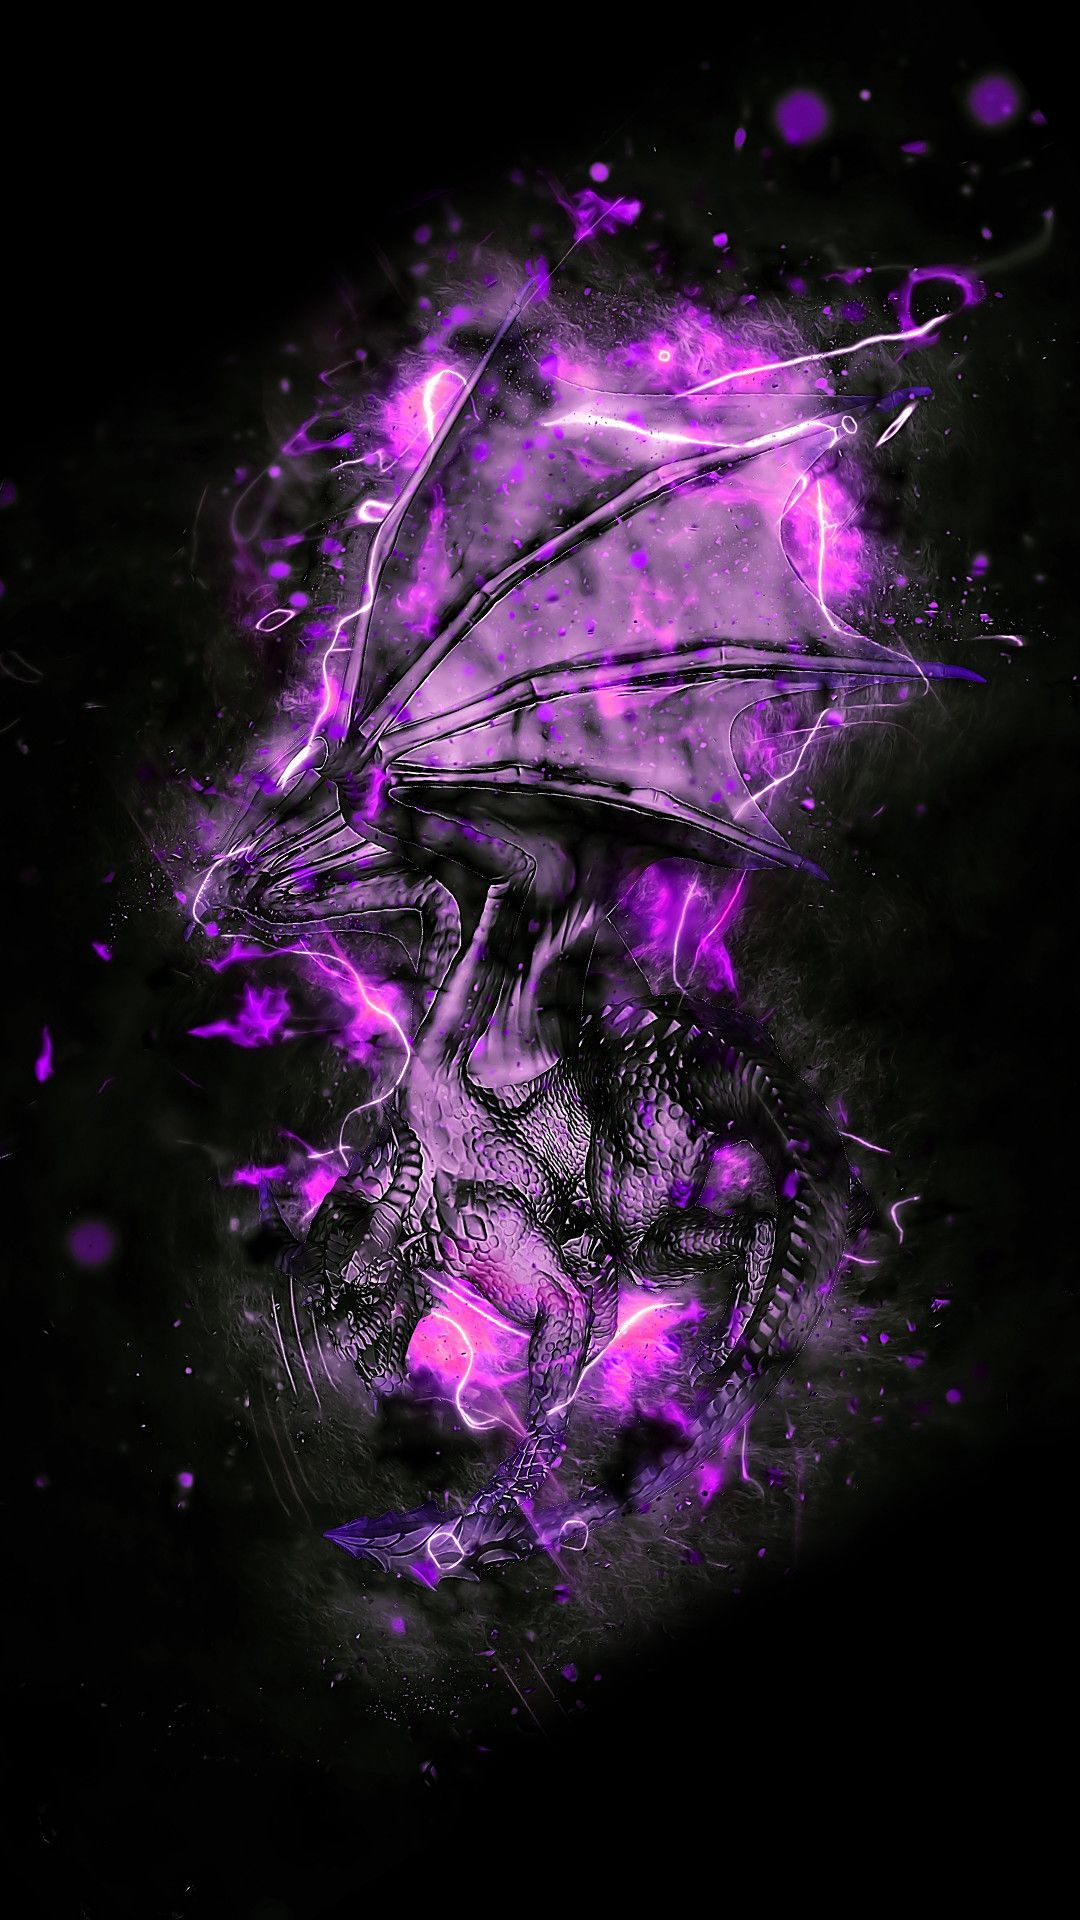 82 Purple Phone Wallpapers On Wallpaperplay Android Wallpaper Gaming Wallpapers Black Wallpaper Iphone